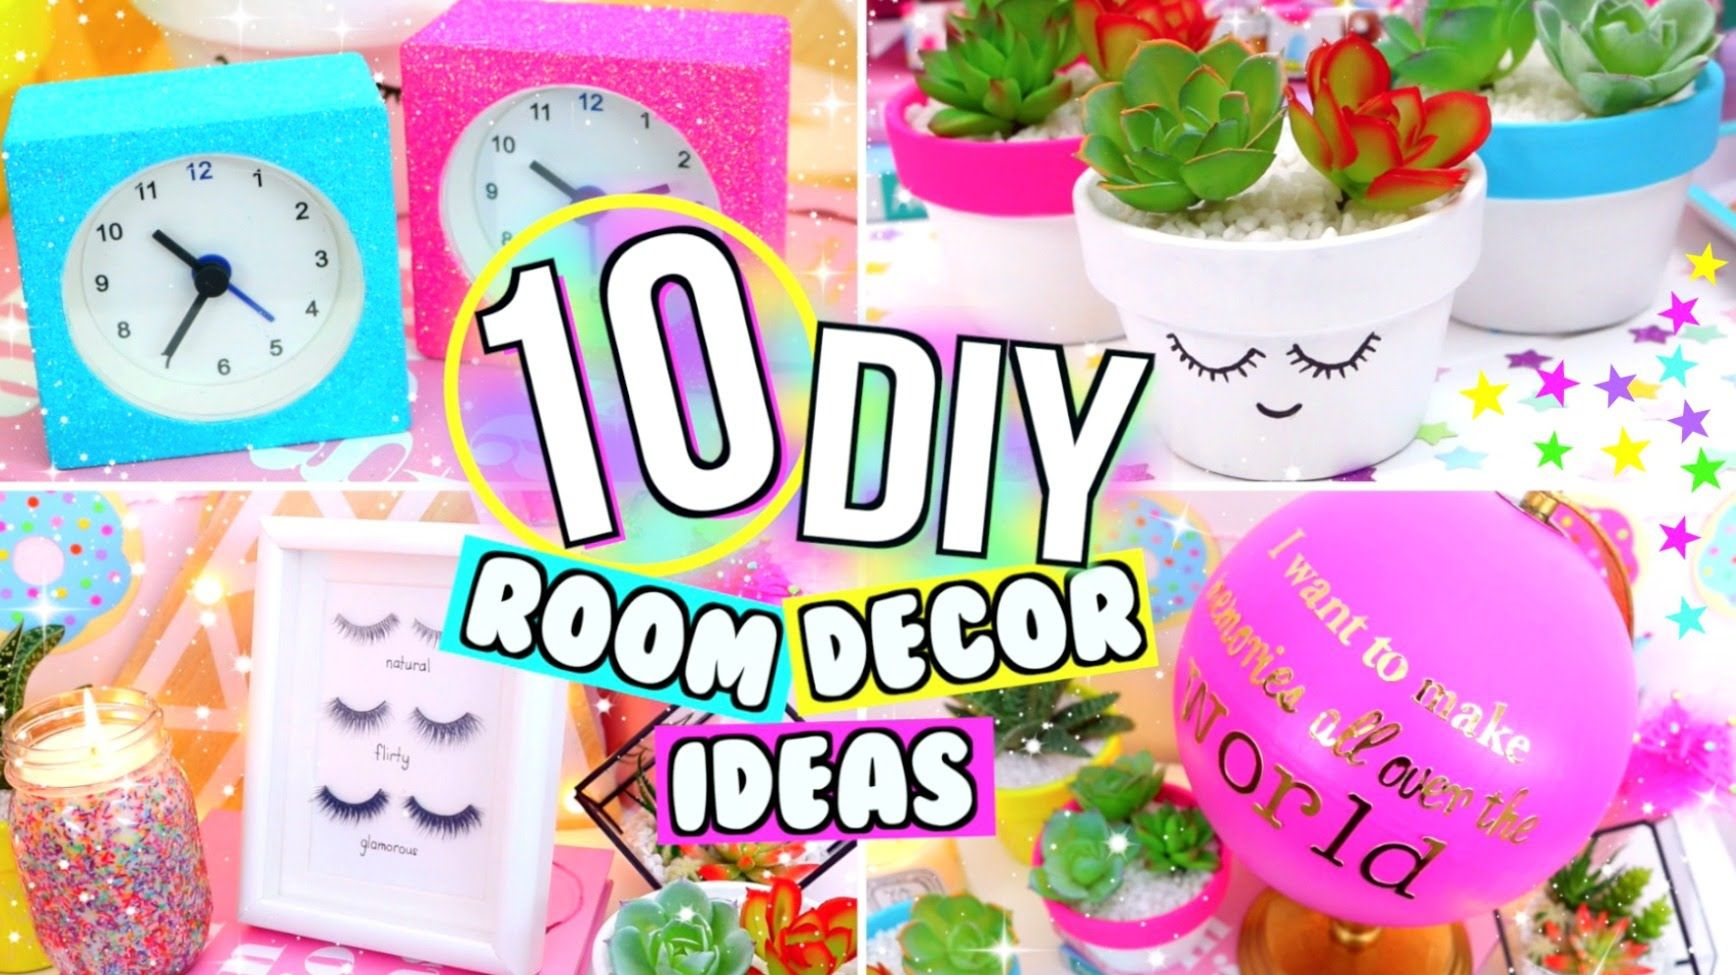 Diy Room Decor Project Ideas You Need To Try 10 diy room decor ideas! fun diy room decor ideas you need to try